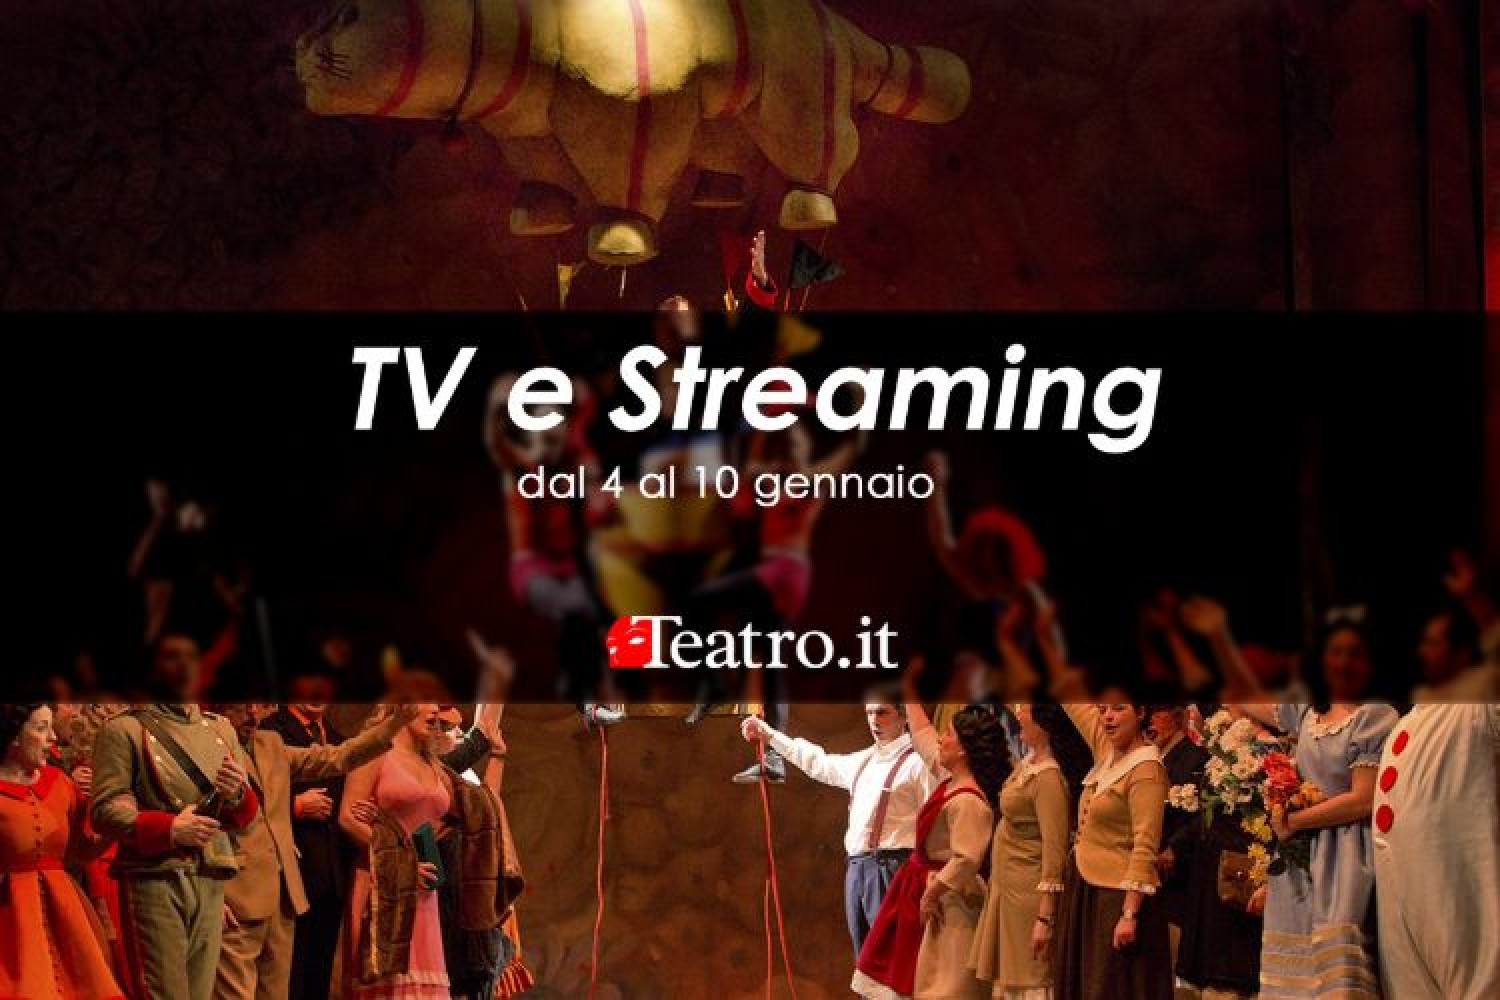 TV e Streaming: 4-10 gennaio